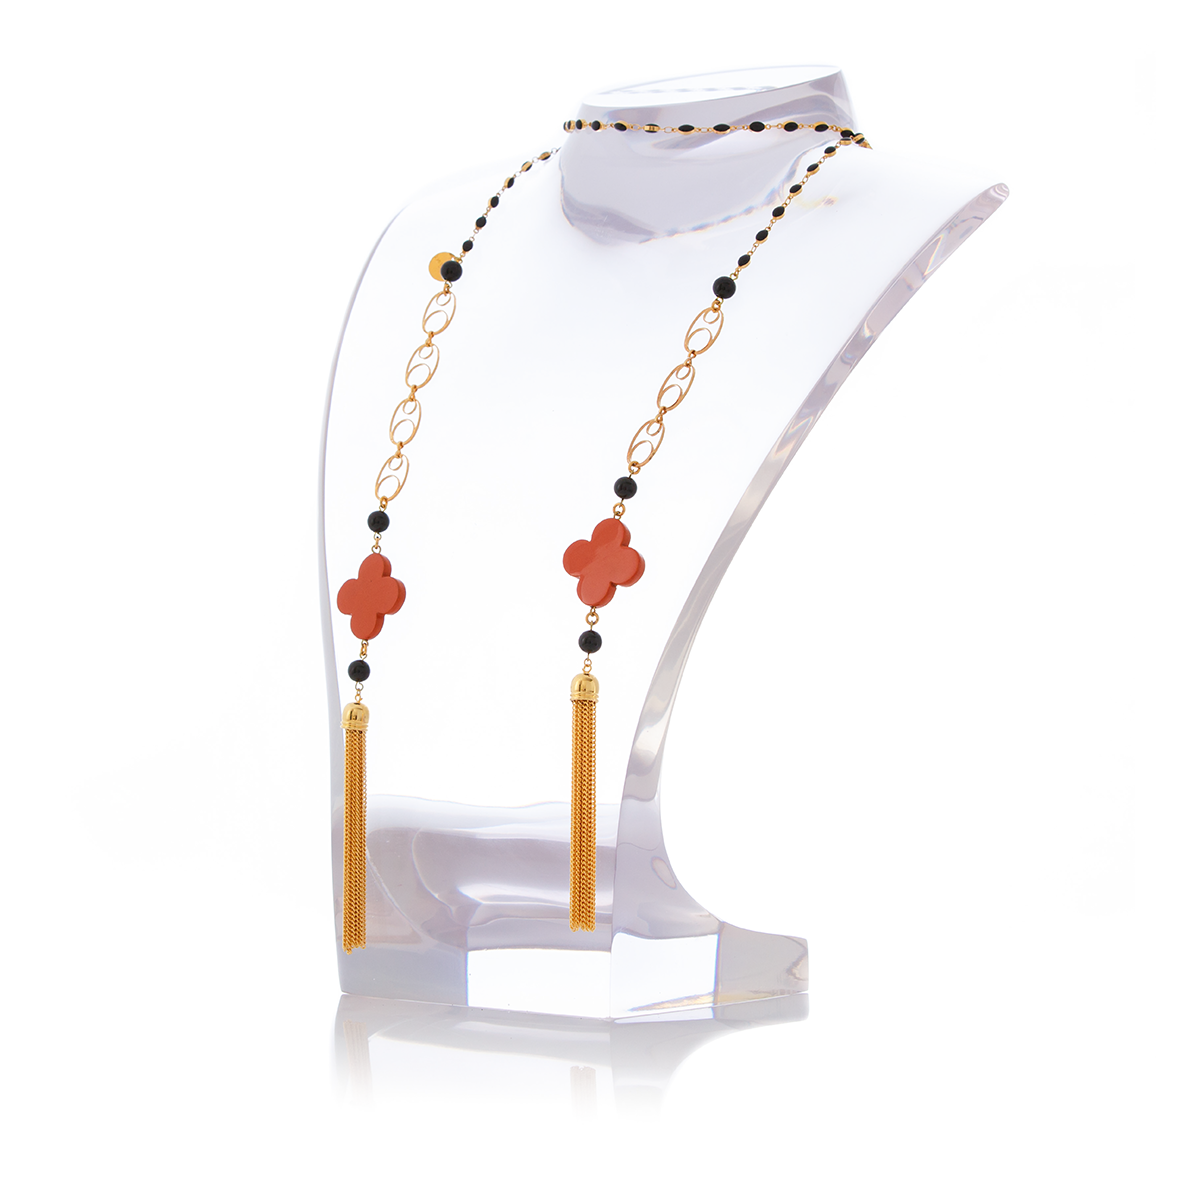 MAURESK Double Tasseled Orange Lacquered Horn and Black Agate Necklace